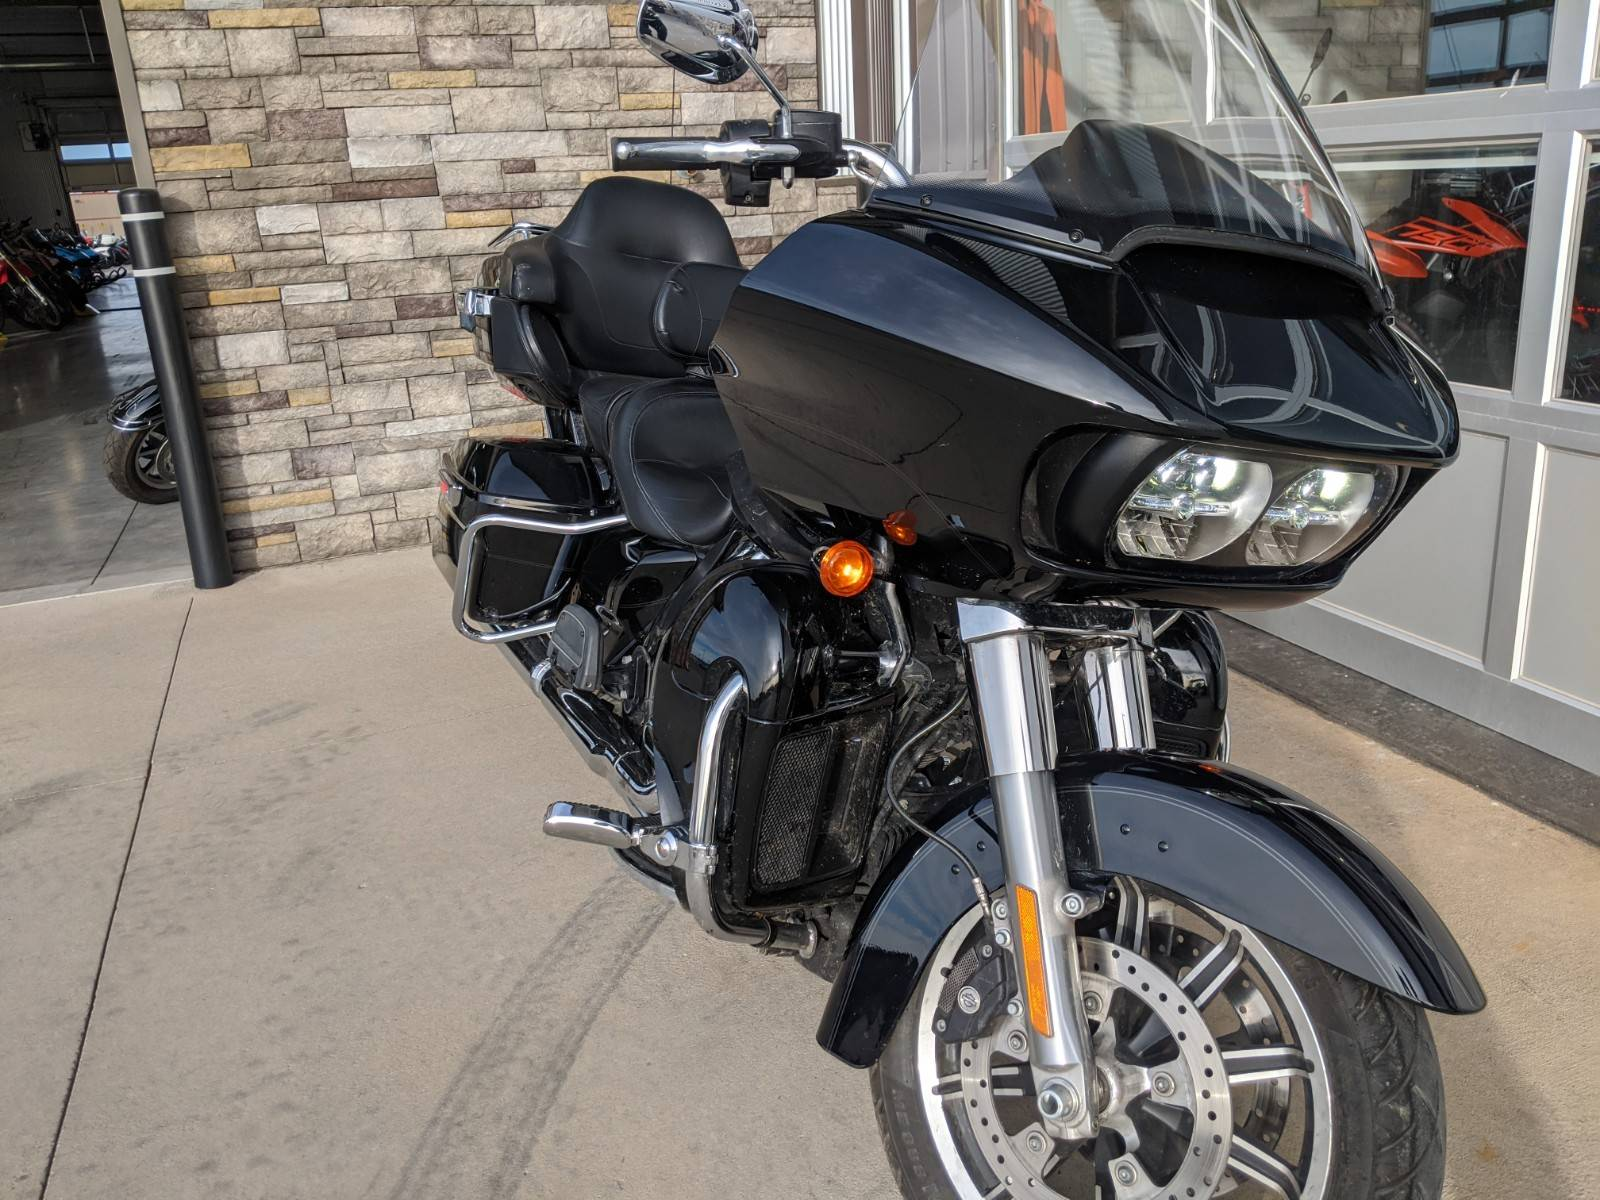 2018 Harley-Davidson Road Glide® Ultra in Rapid City, South Dakota - Photo 8